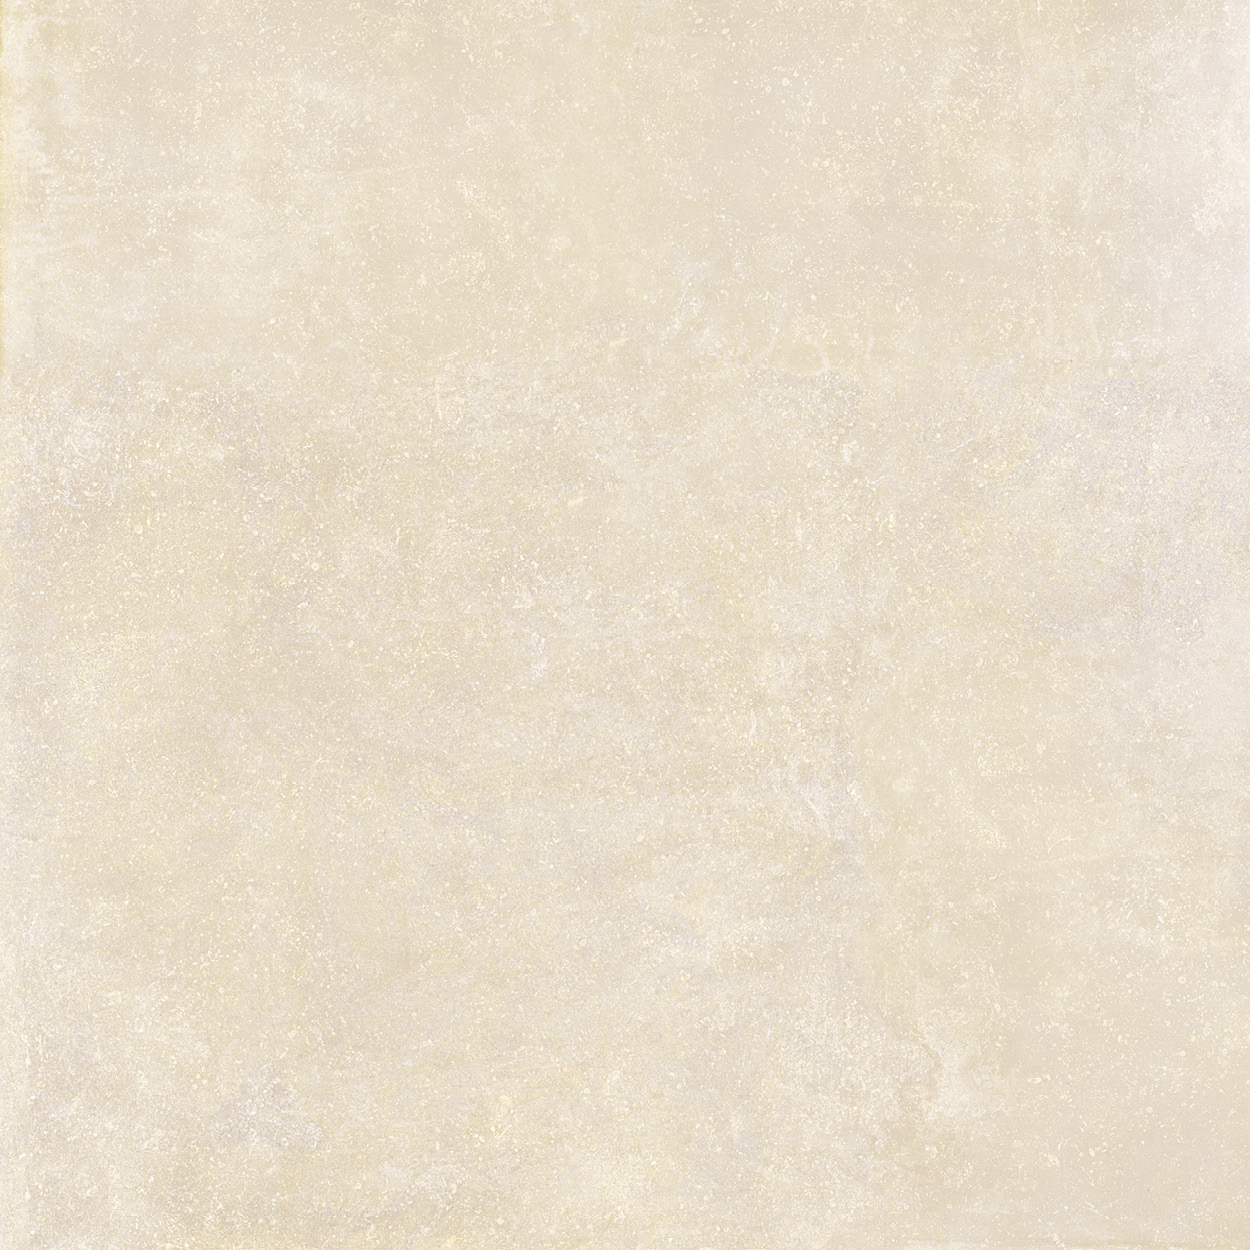 32 X 32 Marwari Moon Rectified Porcelain Tile (SPECIAL ORDER ONLY)